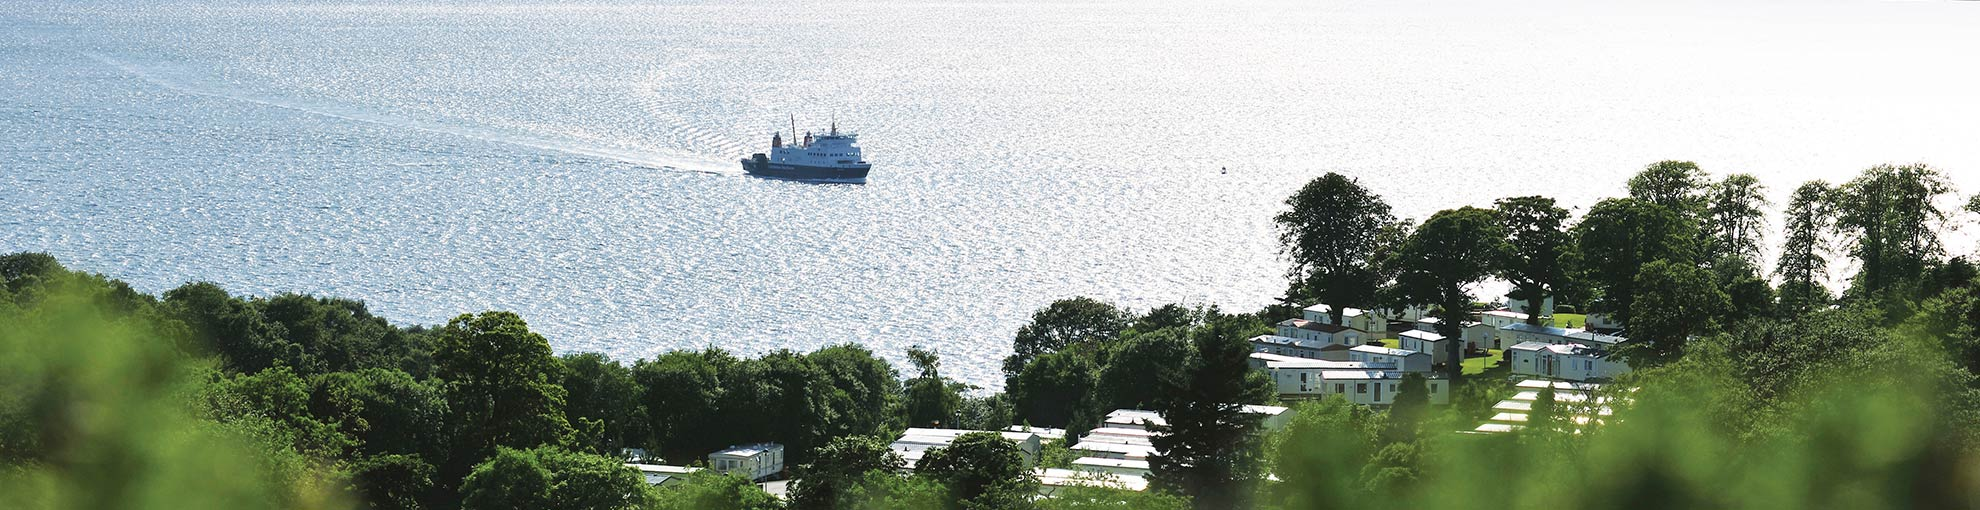 View of a boat on the Firth of Clyde from Wemyss Bay Holiday Park